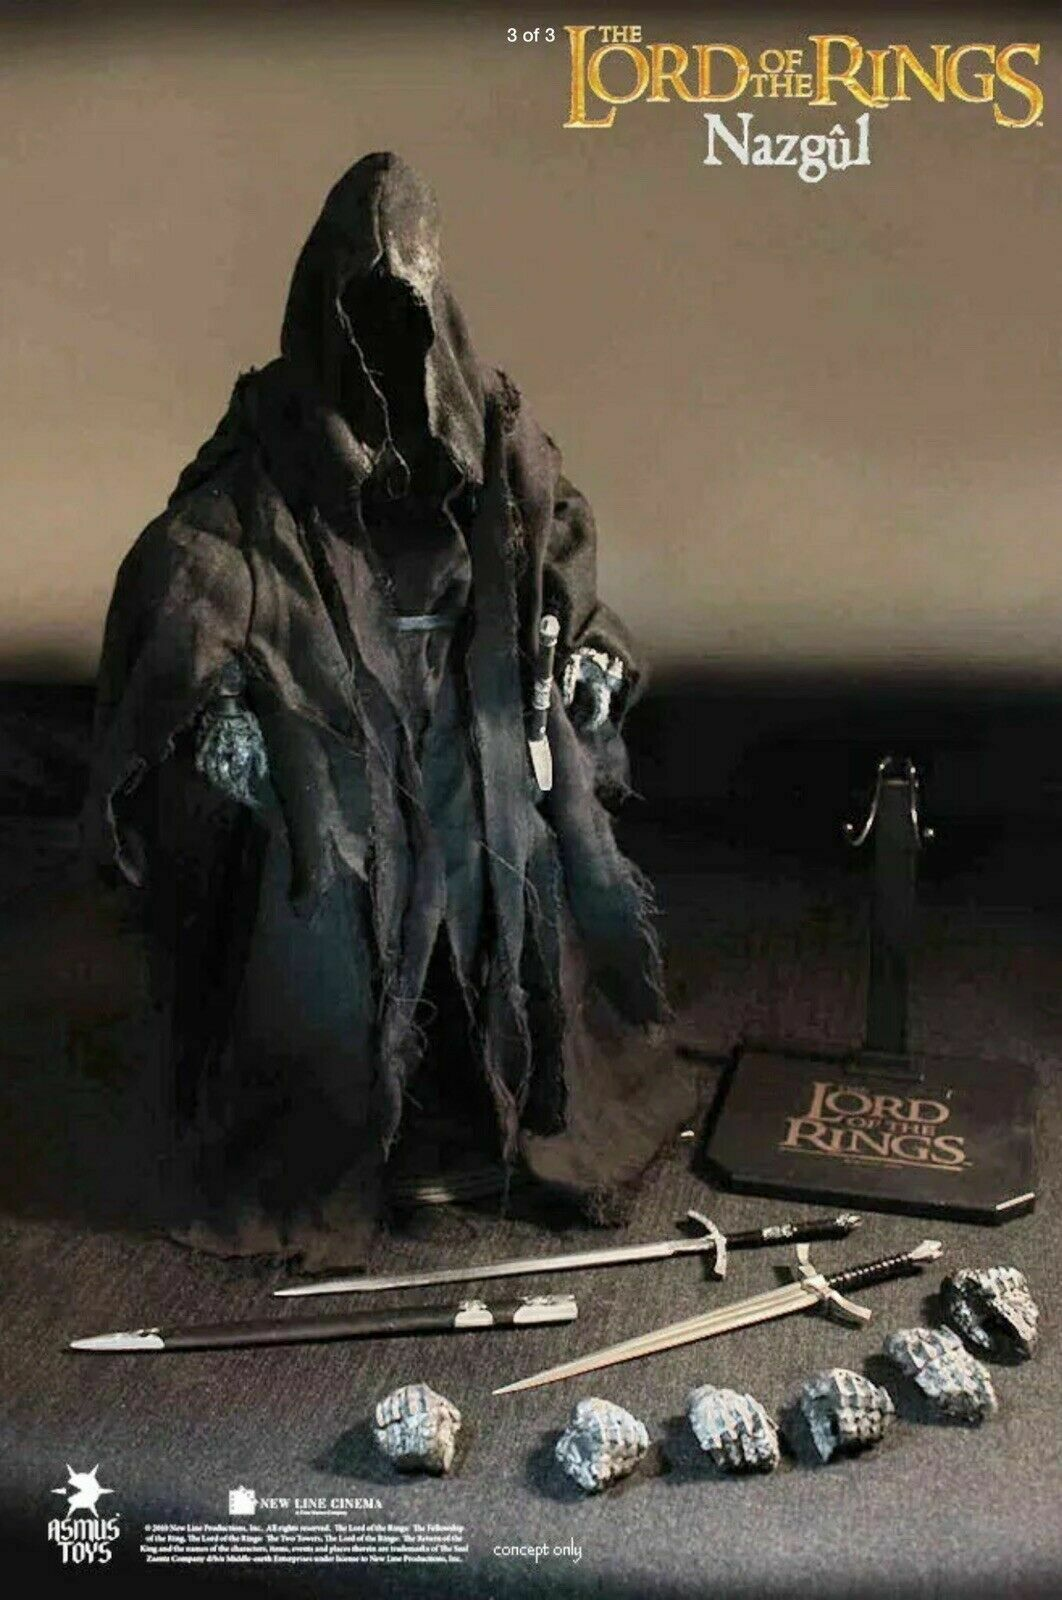 RARE ASMUS Toys - The Lord of the Rings - Nazgul 1 6 Figure -  NEW